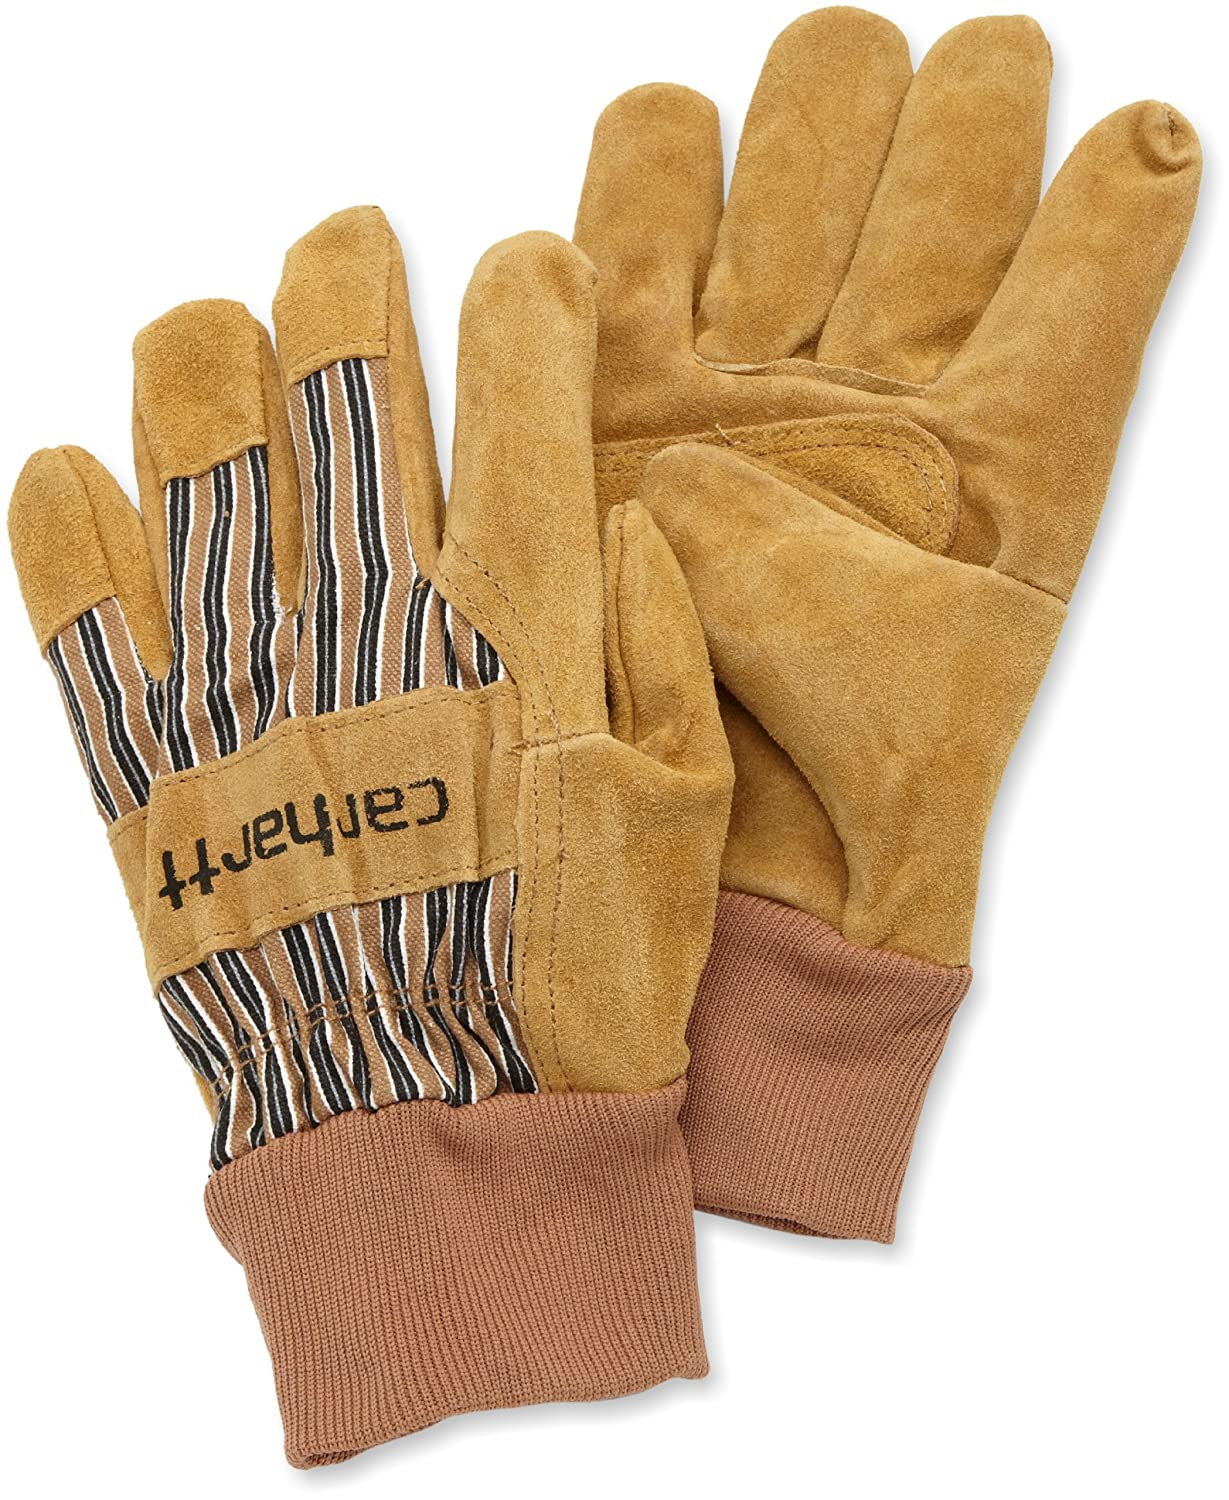 Insulated leather work gloves amazon - Carhartt Men S Suede Work Glove With Knit Cuff